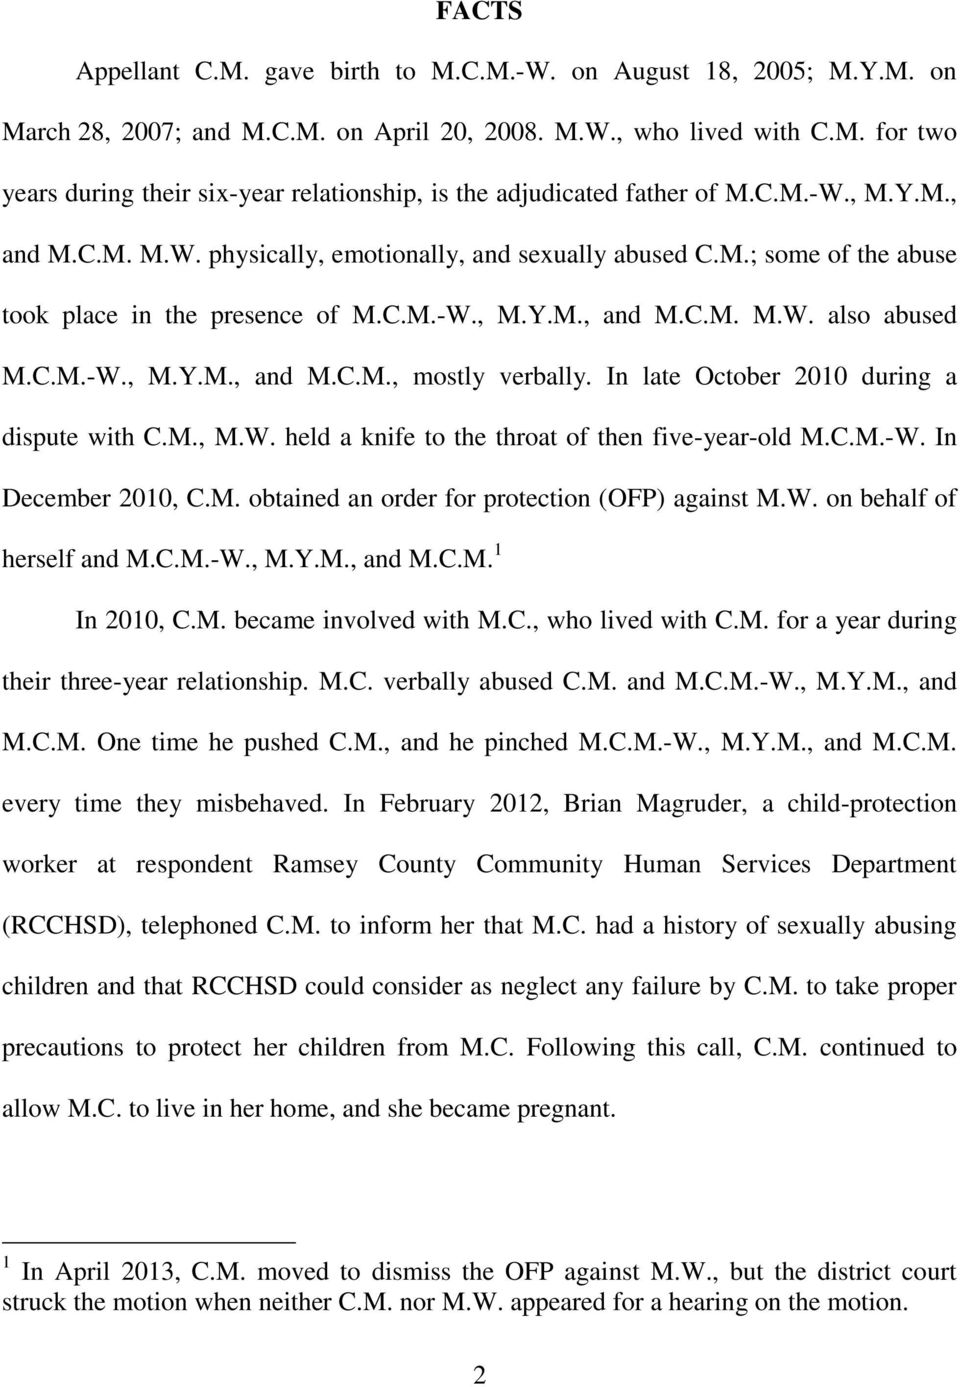 In late October 2010 during a dispute with C.M., M.W. held a knife to the throat of then five-year-old M.C.M.-W. In December 2010, C.M. obtained an order for protection (OFP) against M.W. on behalf of herself and M.